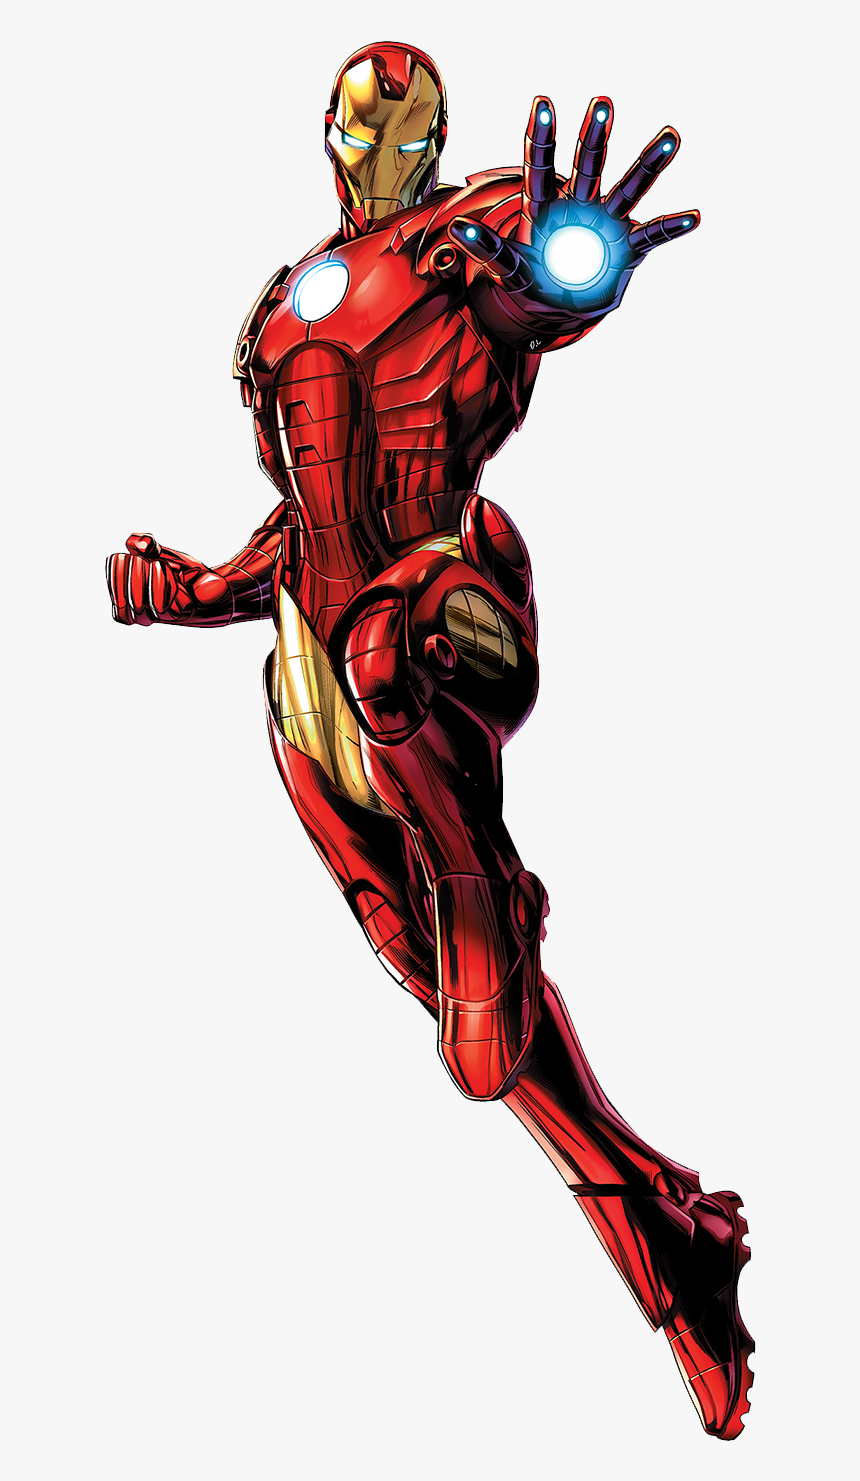 Iron Man Marvel Avengers, HD Png Download, Free Download